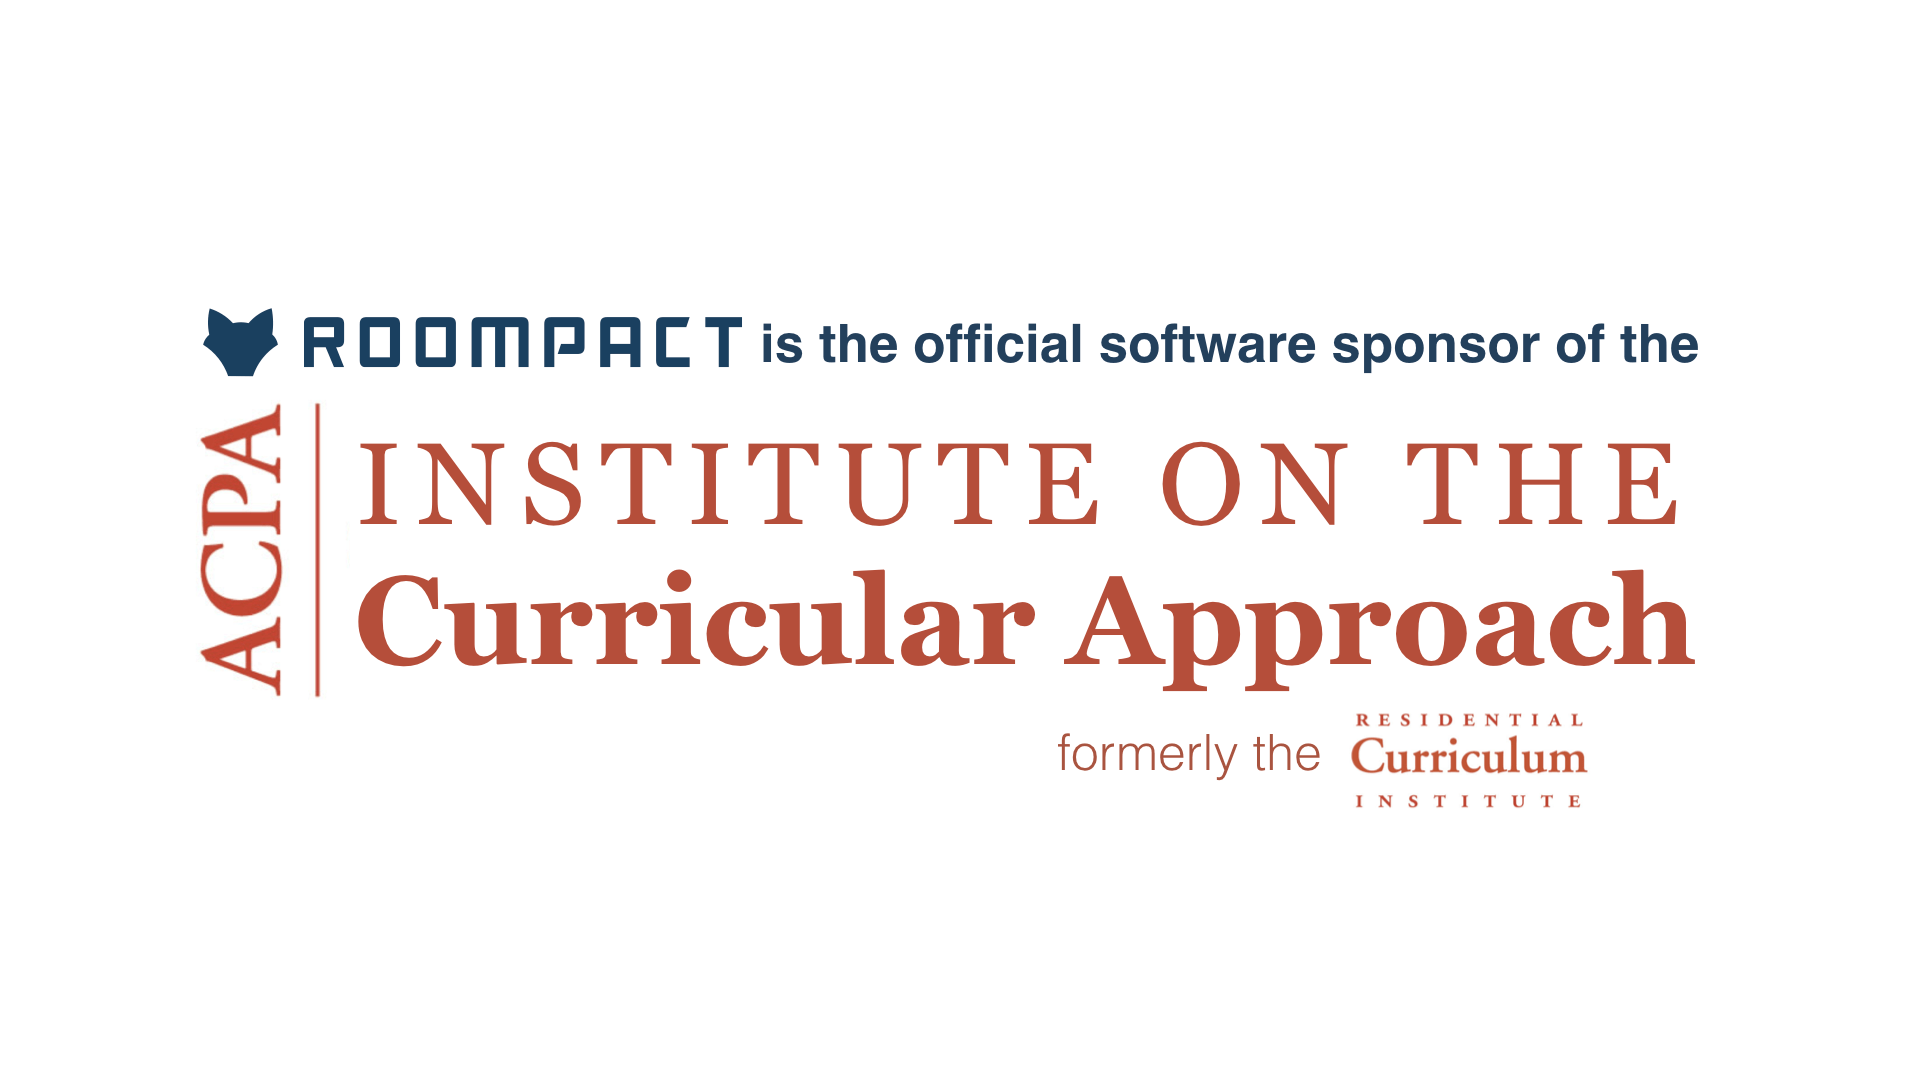 ICA Institute on the Curricular Approach Logo